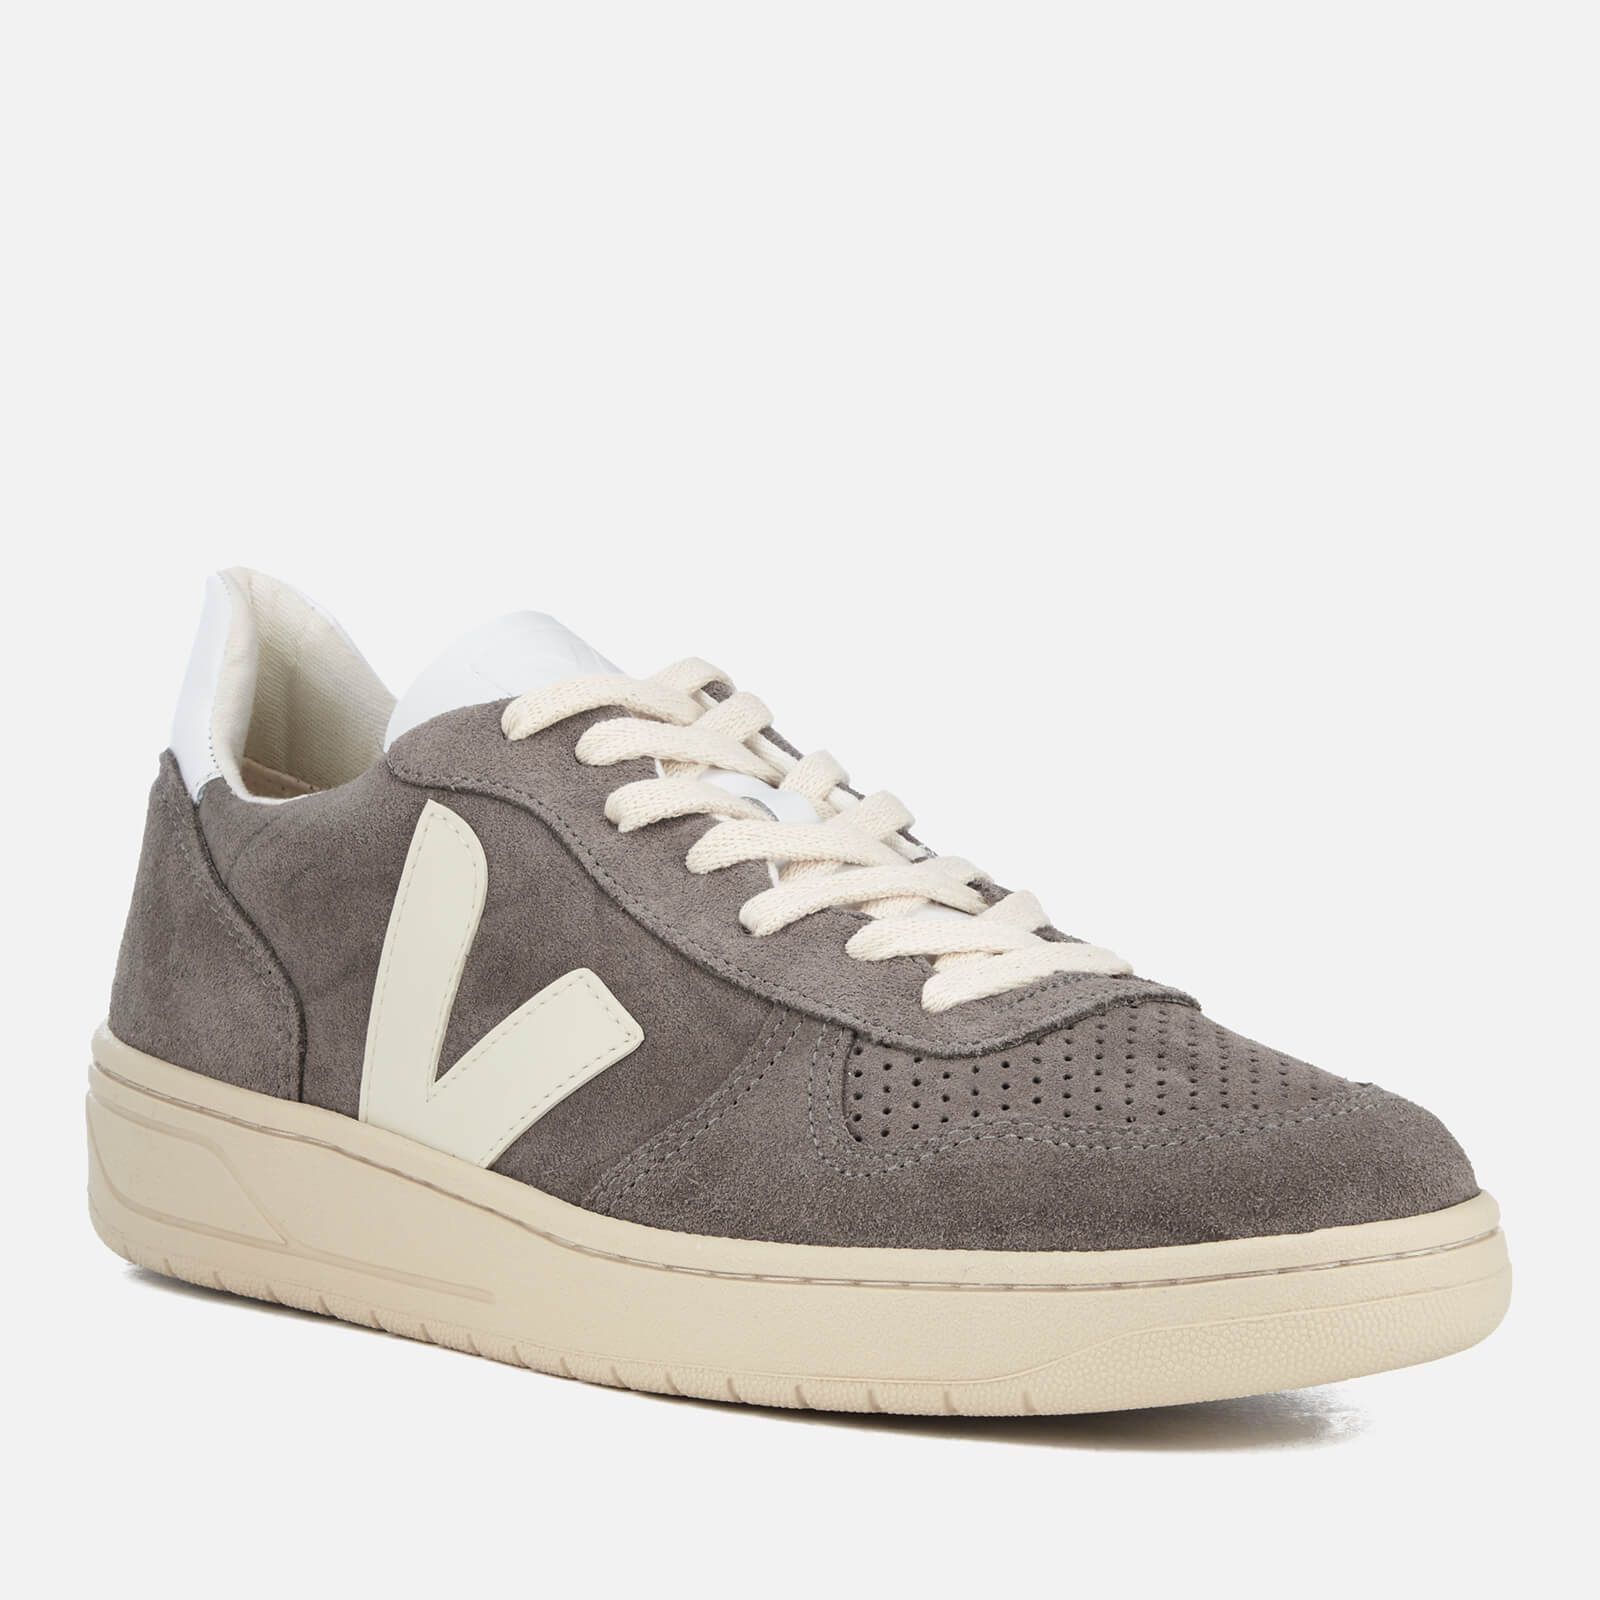 Suede trainers, Sneakers